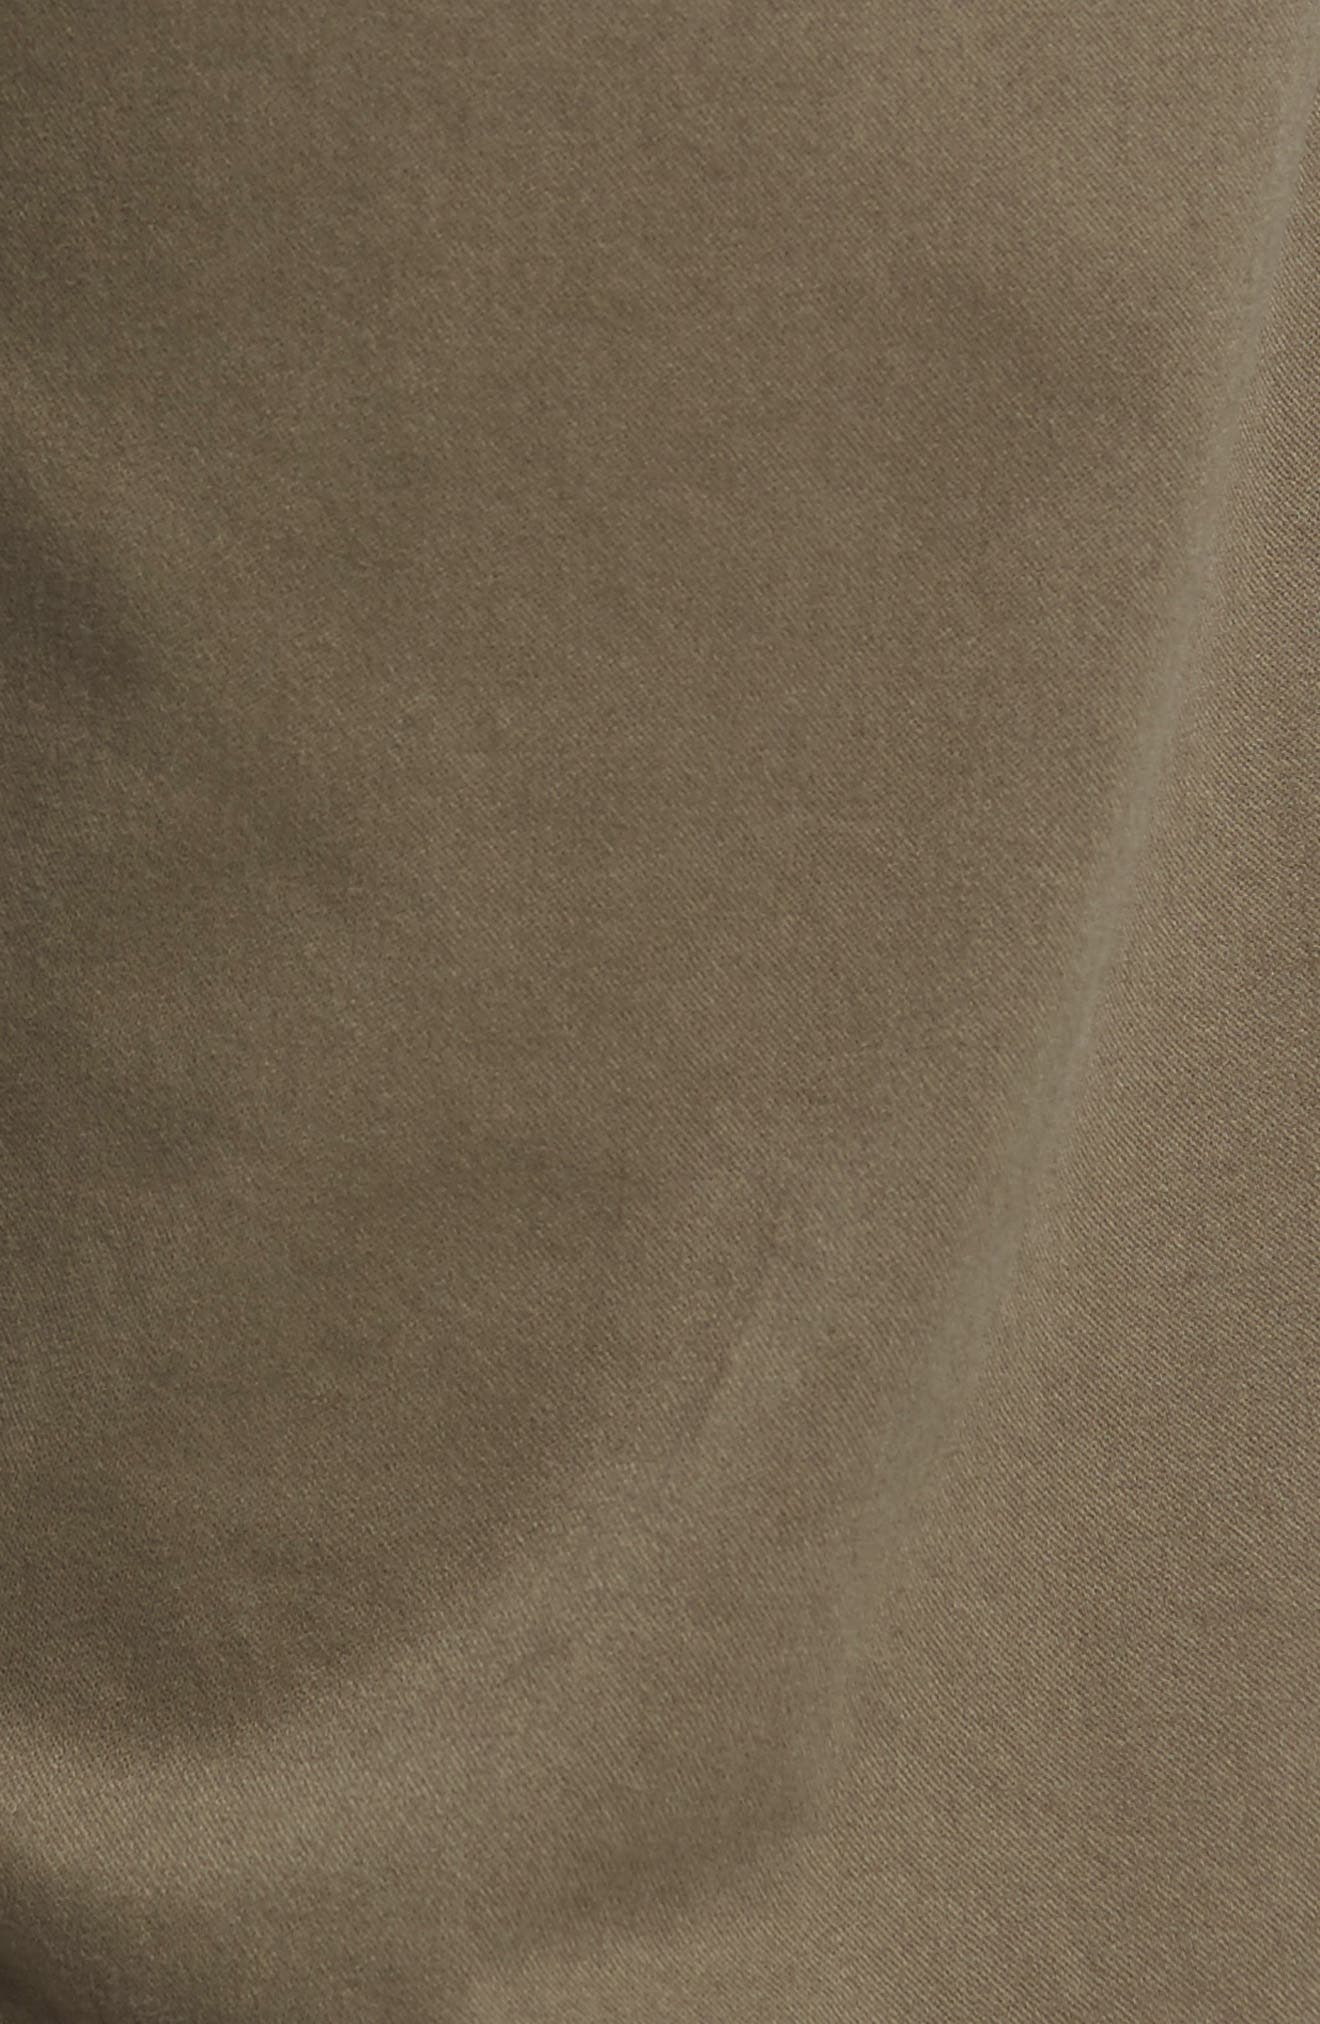 Zach Straight Fit Twill Pants,                             Alternate thumbnail 5, color,                             DUSTY OLIVE TWILL